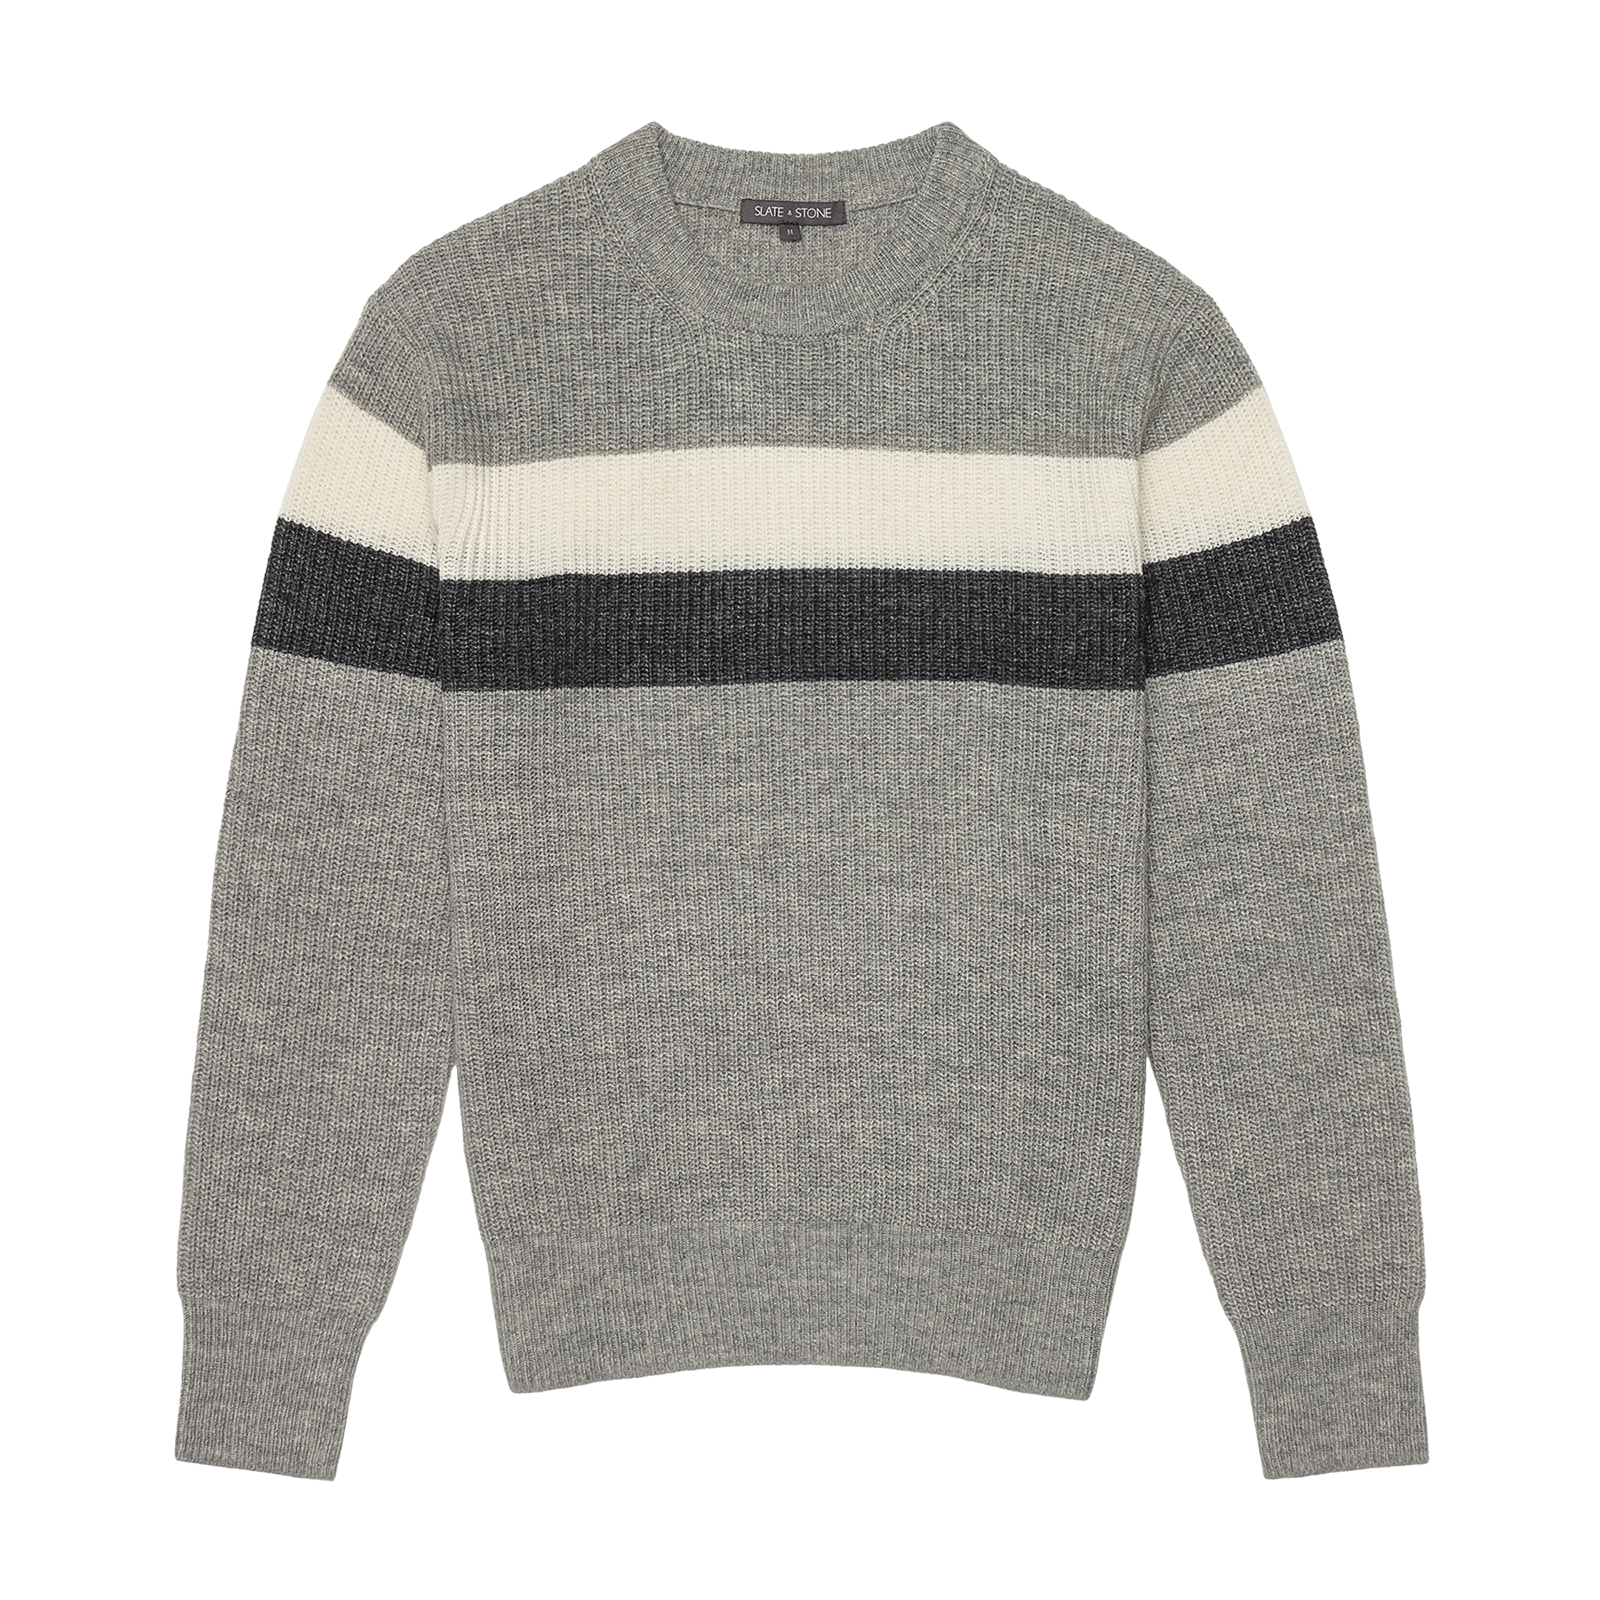 Flat lay sweater product image